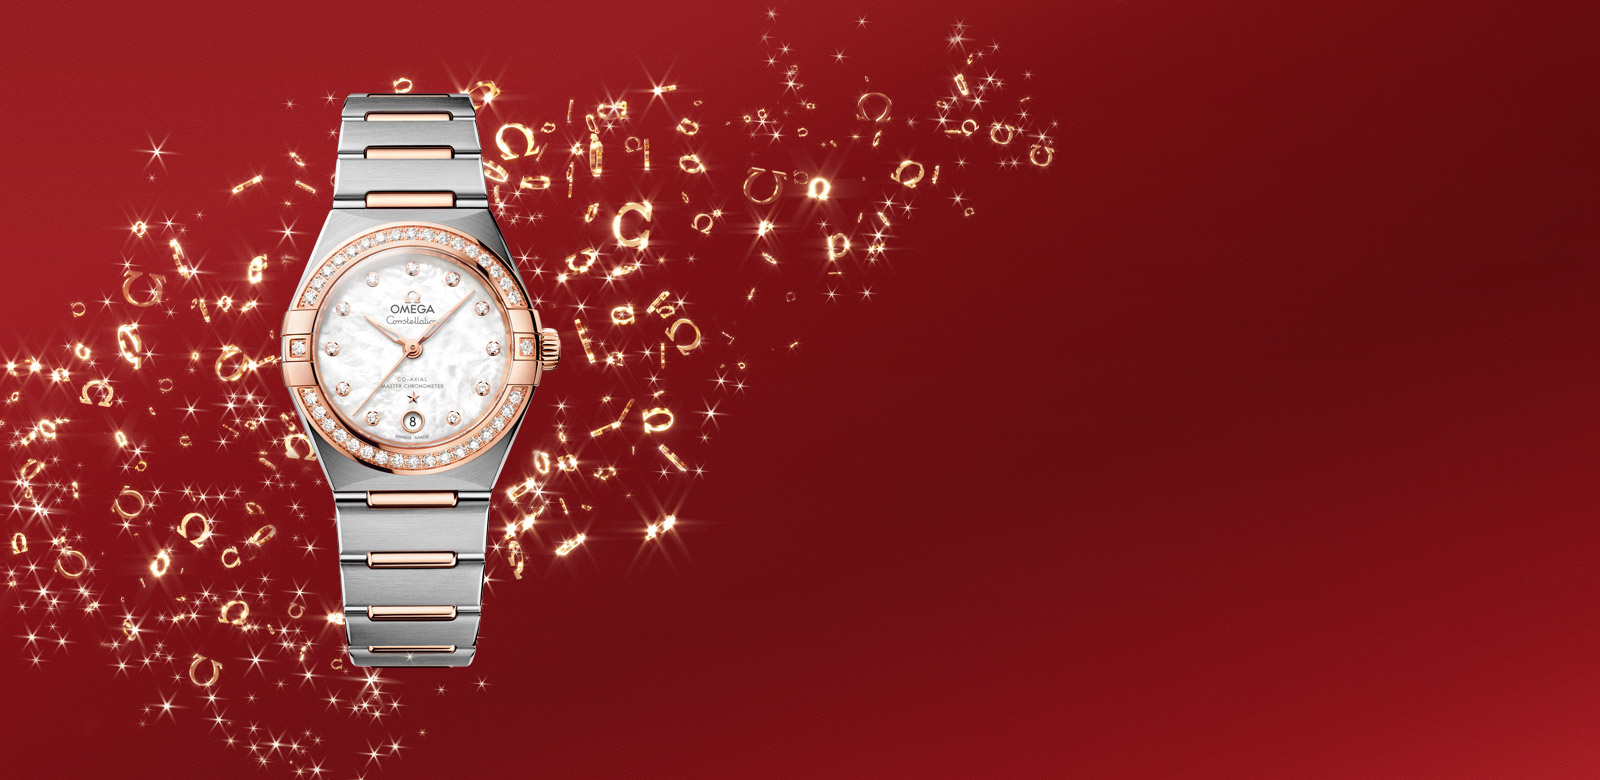 OMEGA® Swiss Luxury Watches Since 1848 Carousel 2 - 82172